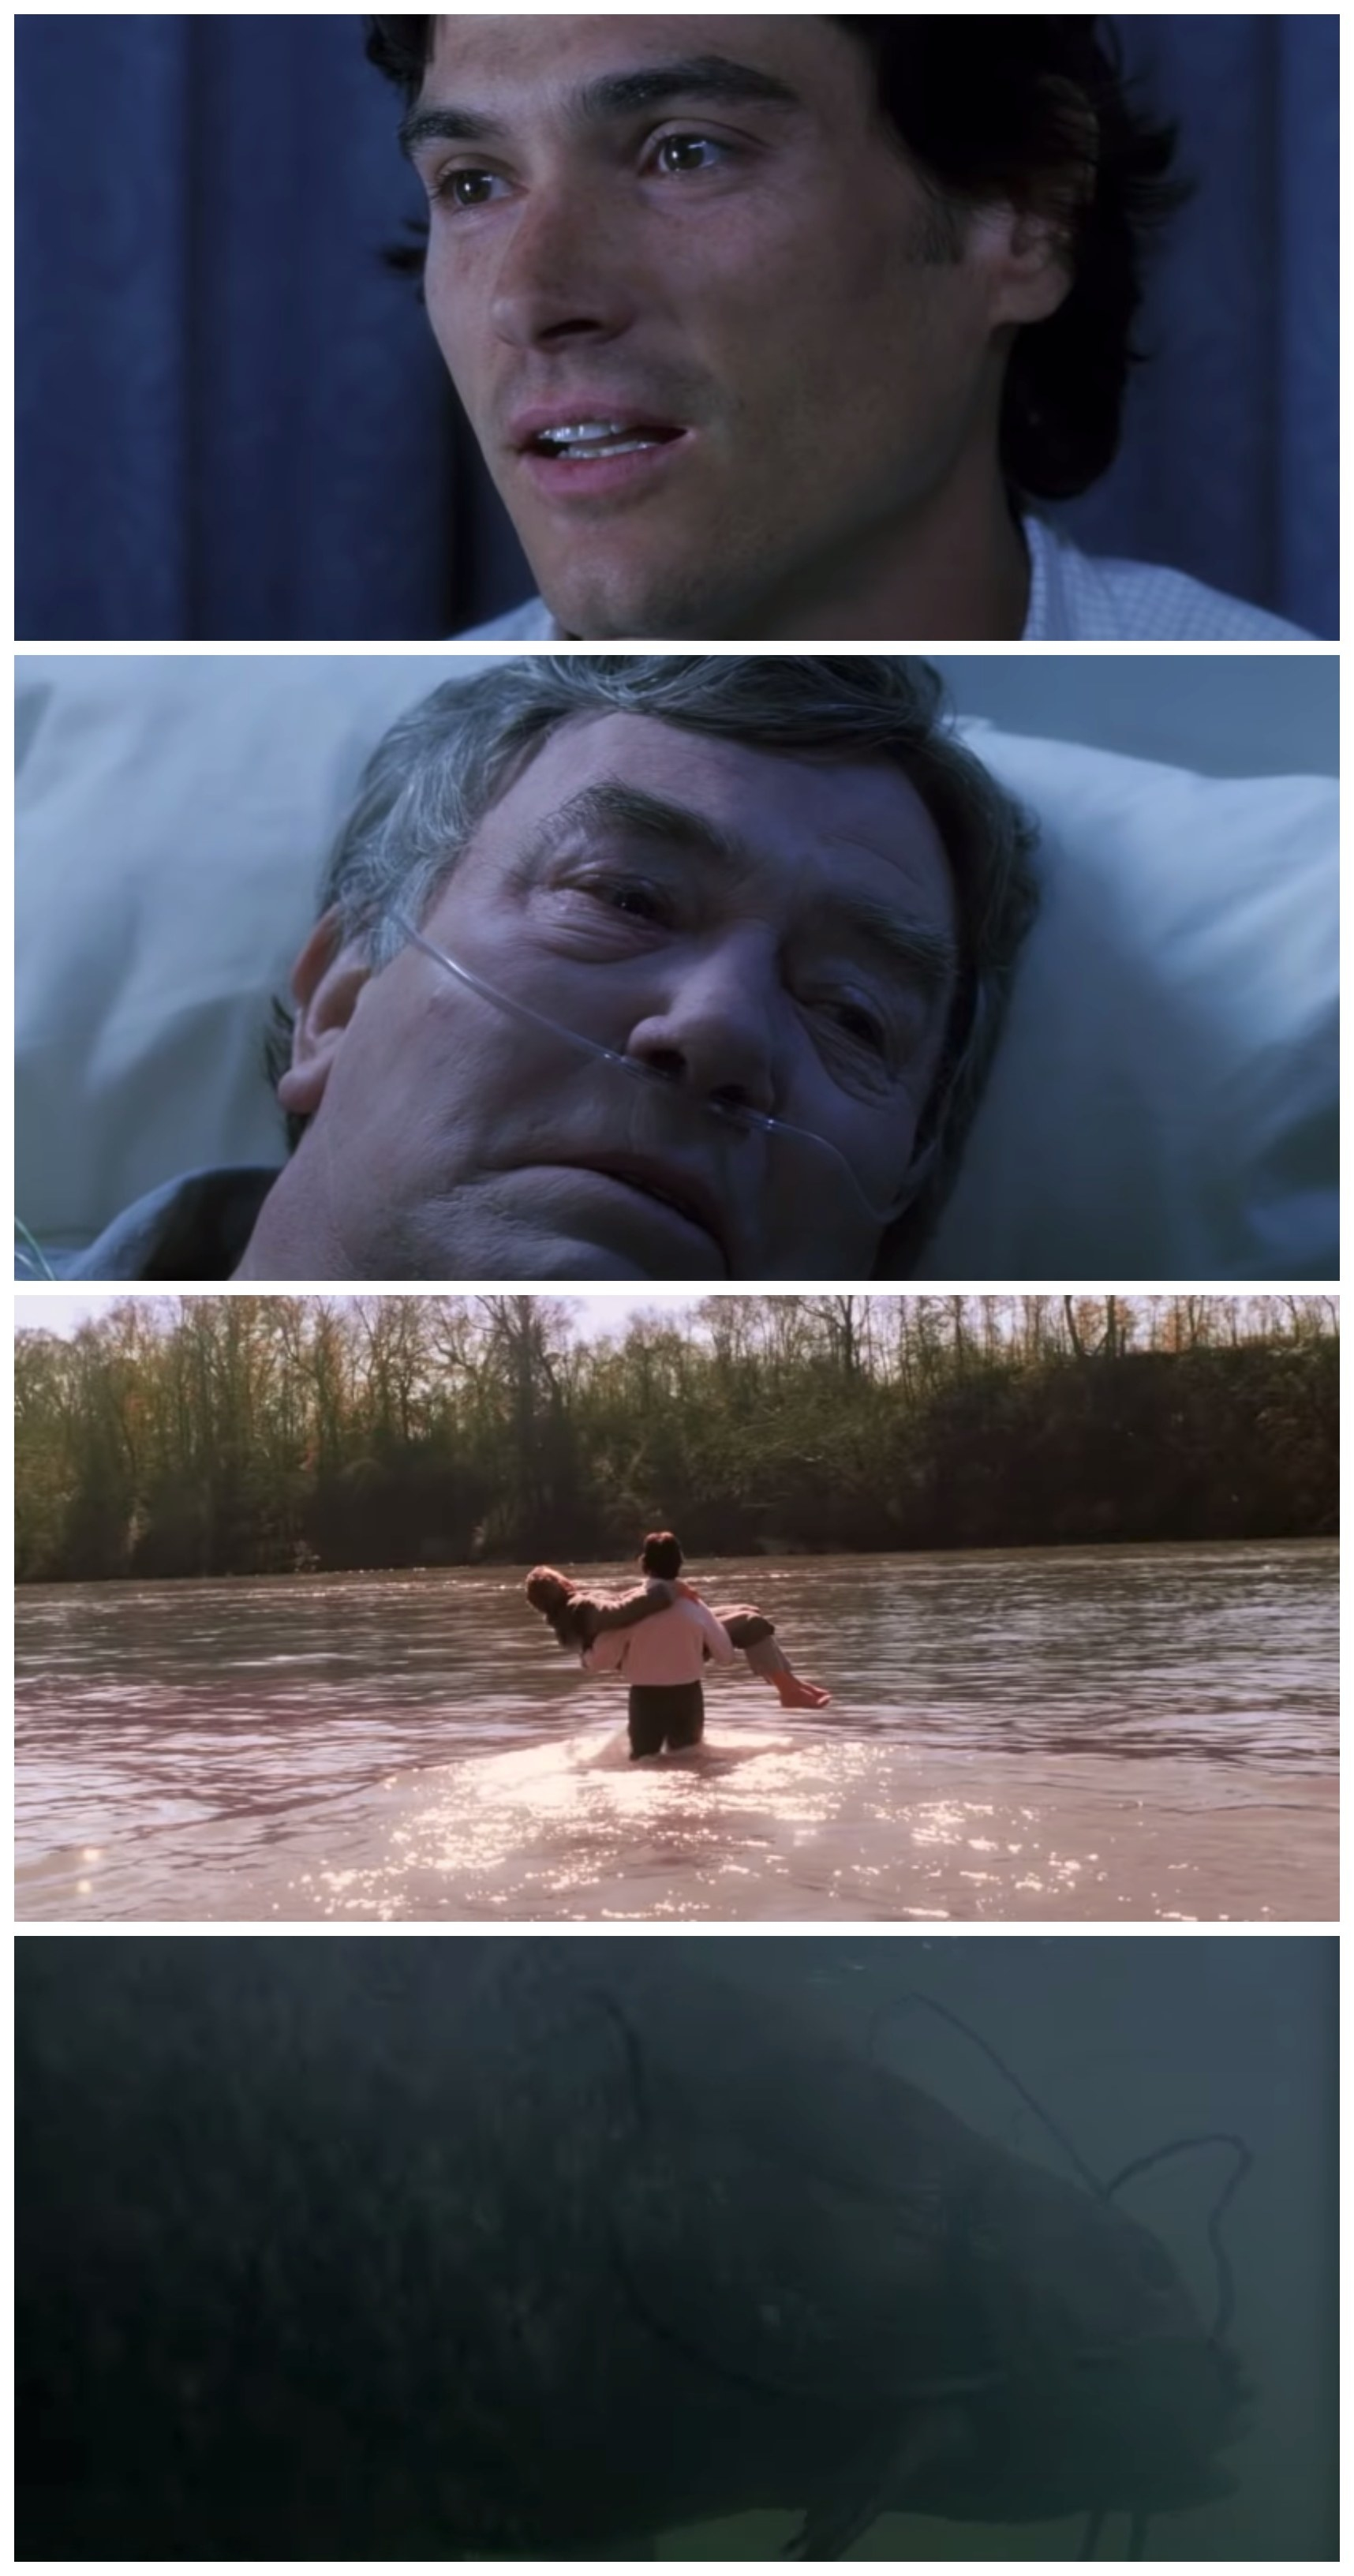 A collage of Will talking to his father in the hospital and imagining the dream sequence of taking him to the river